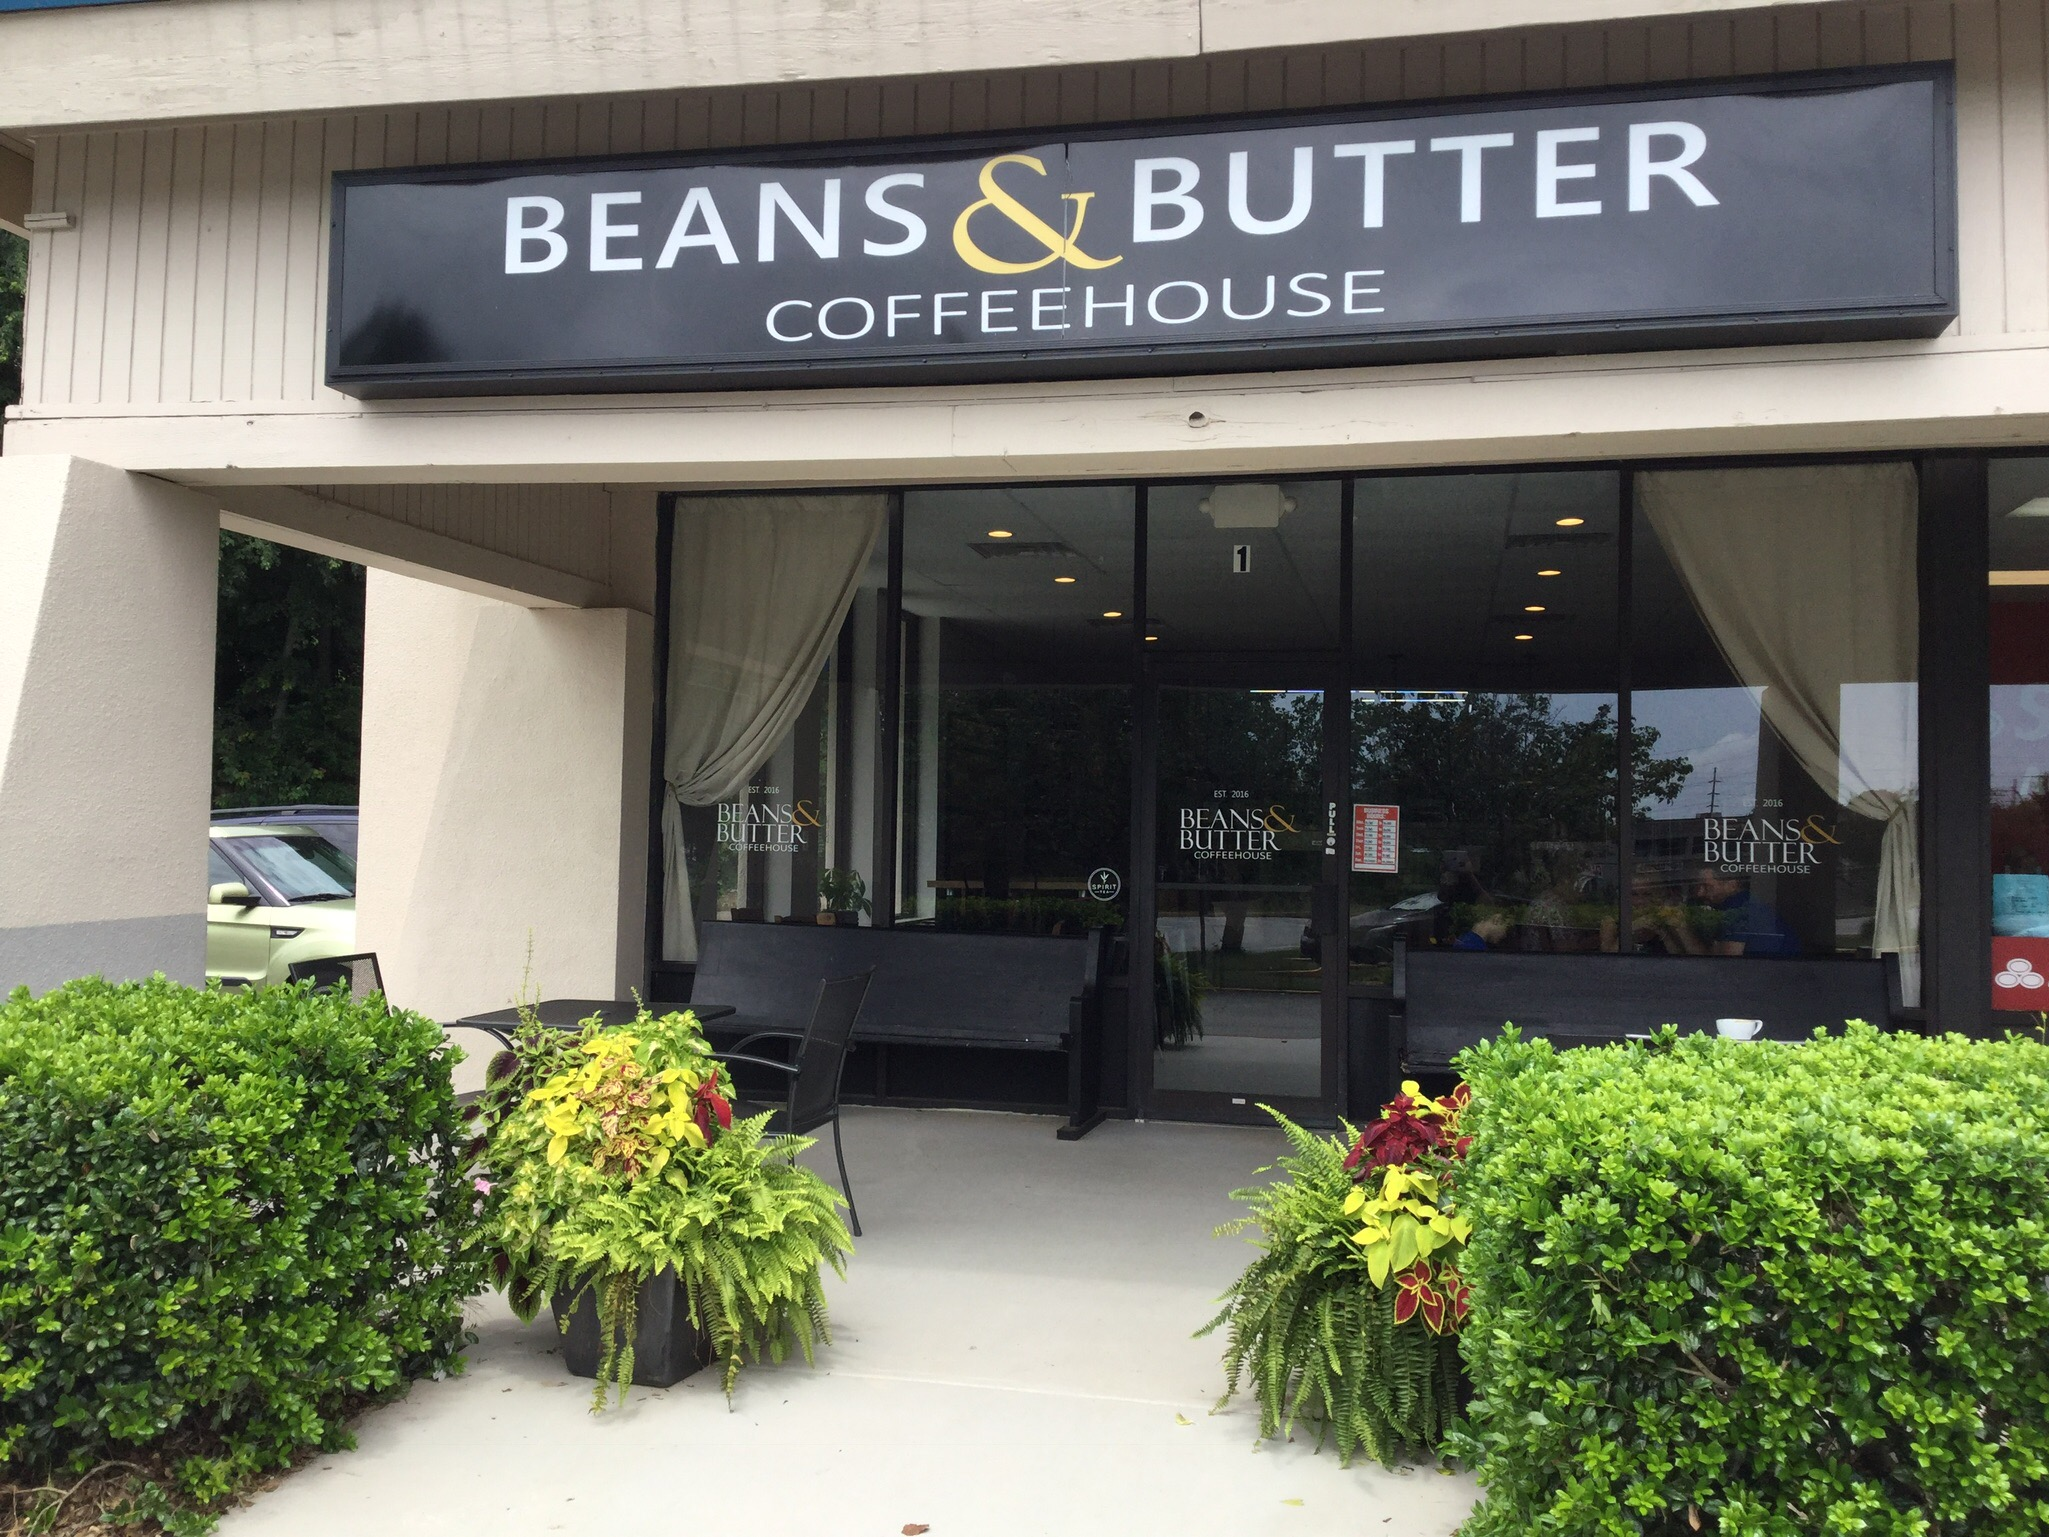 Photo of Beans & Butter storefront